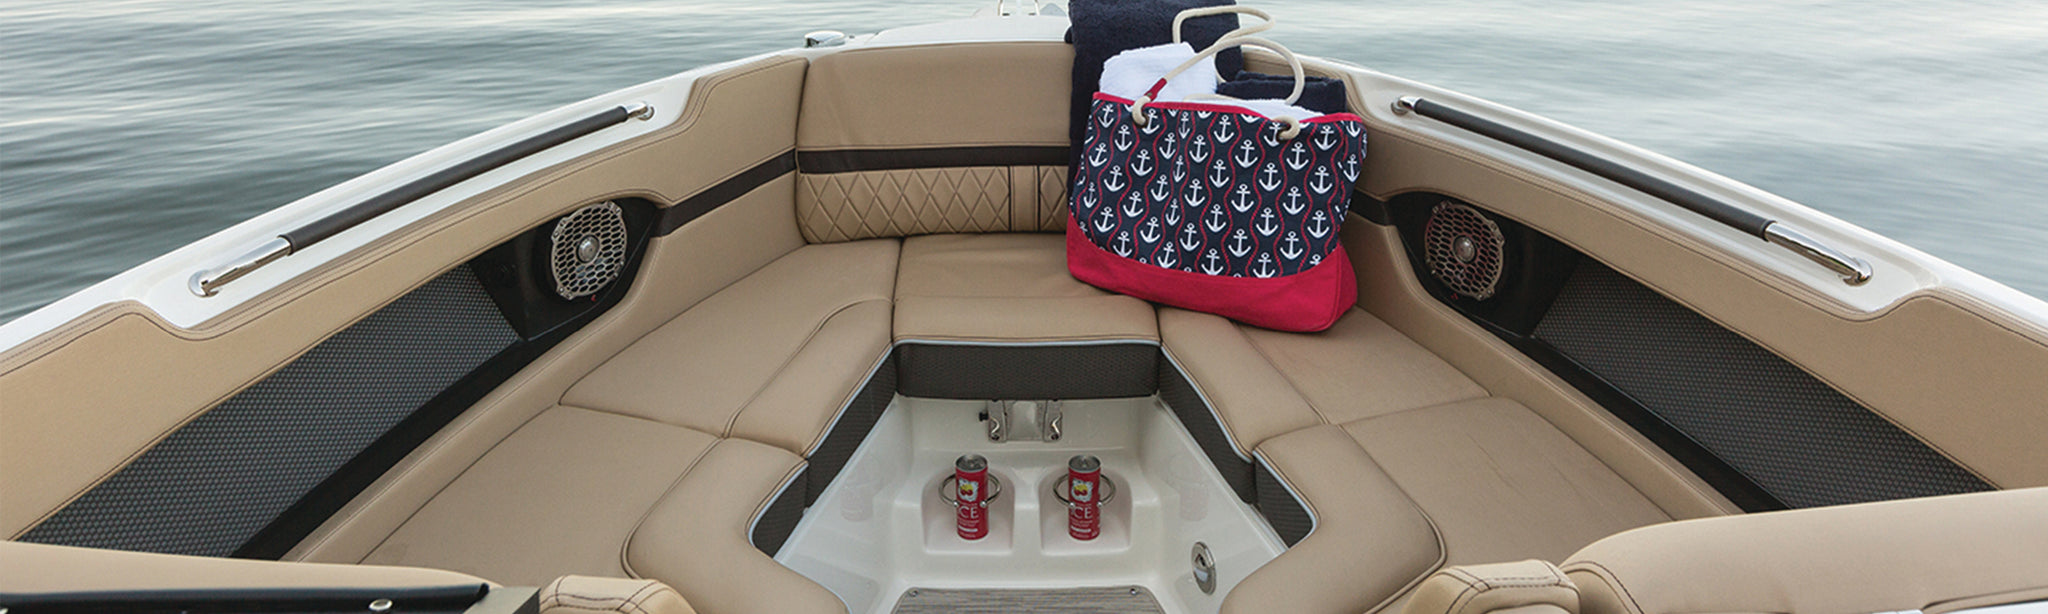 Searay enthusiasts trust infinity for their boats